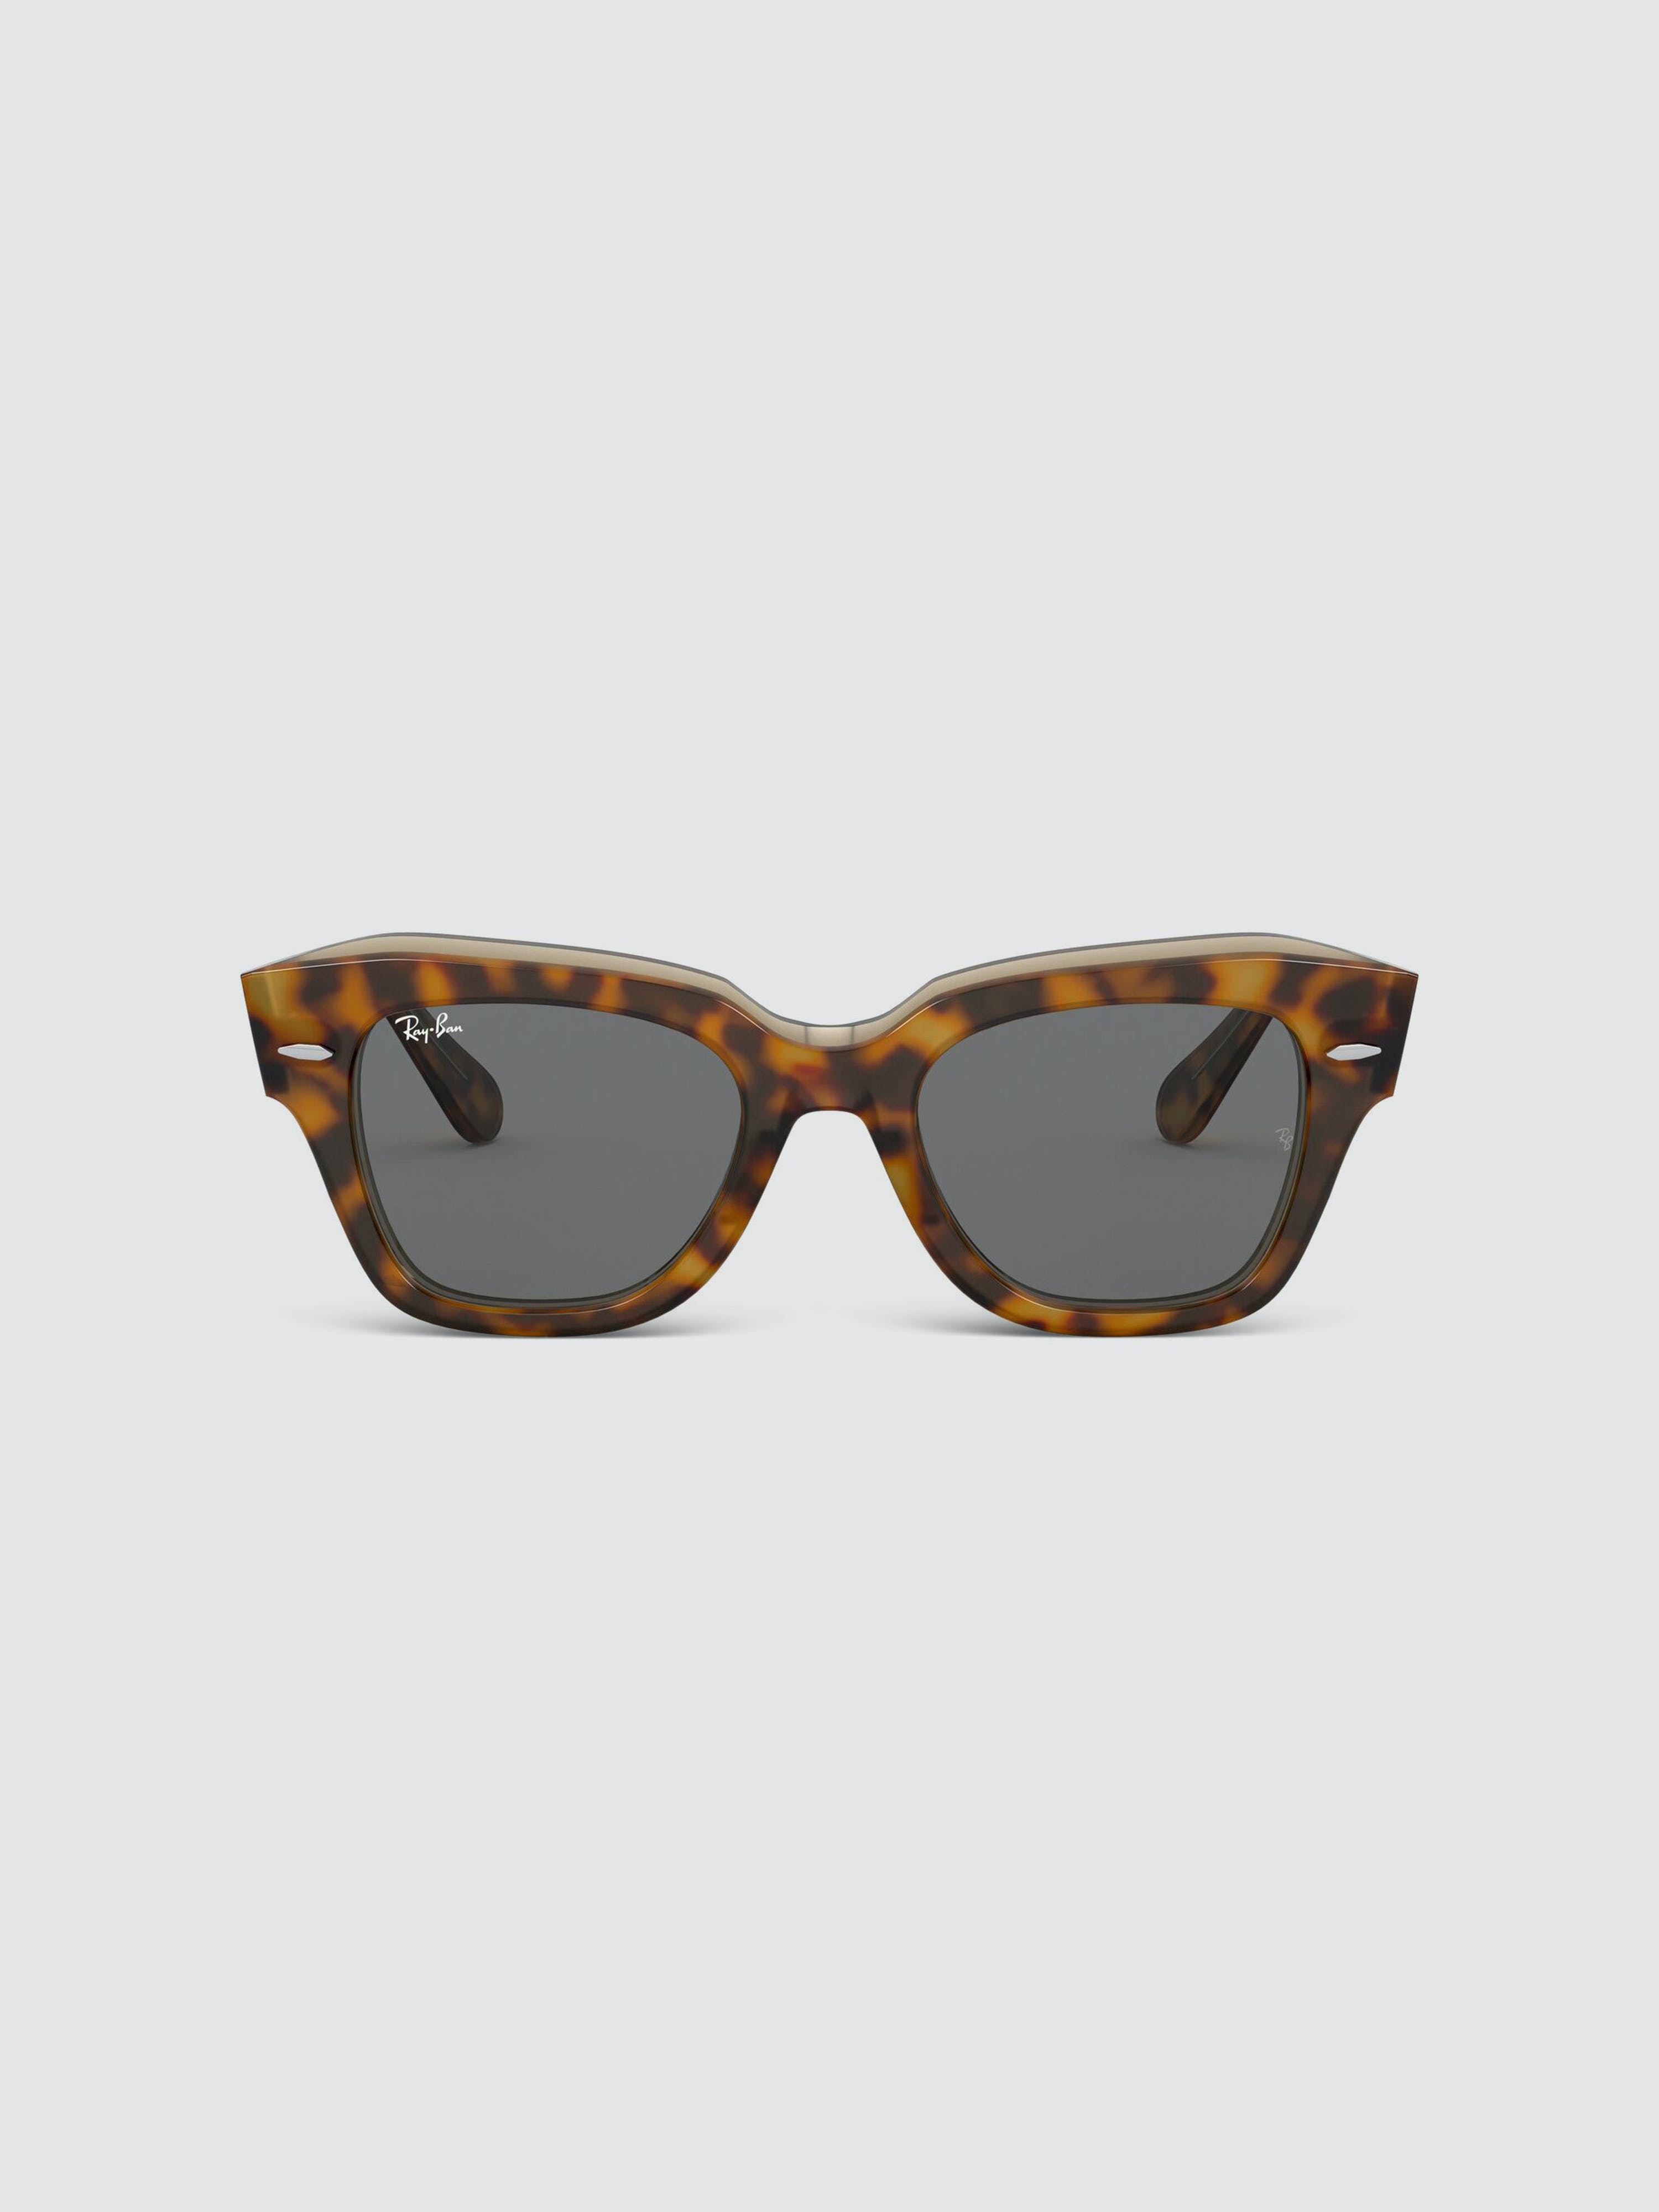 Ray Ban STATE STREET SUNGLASSES